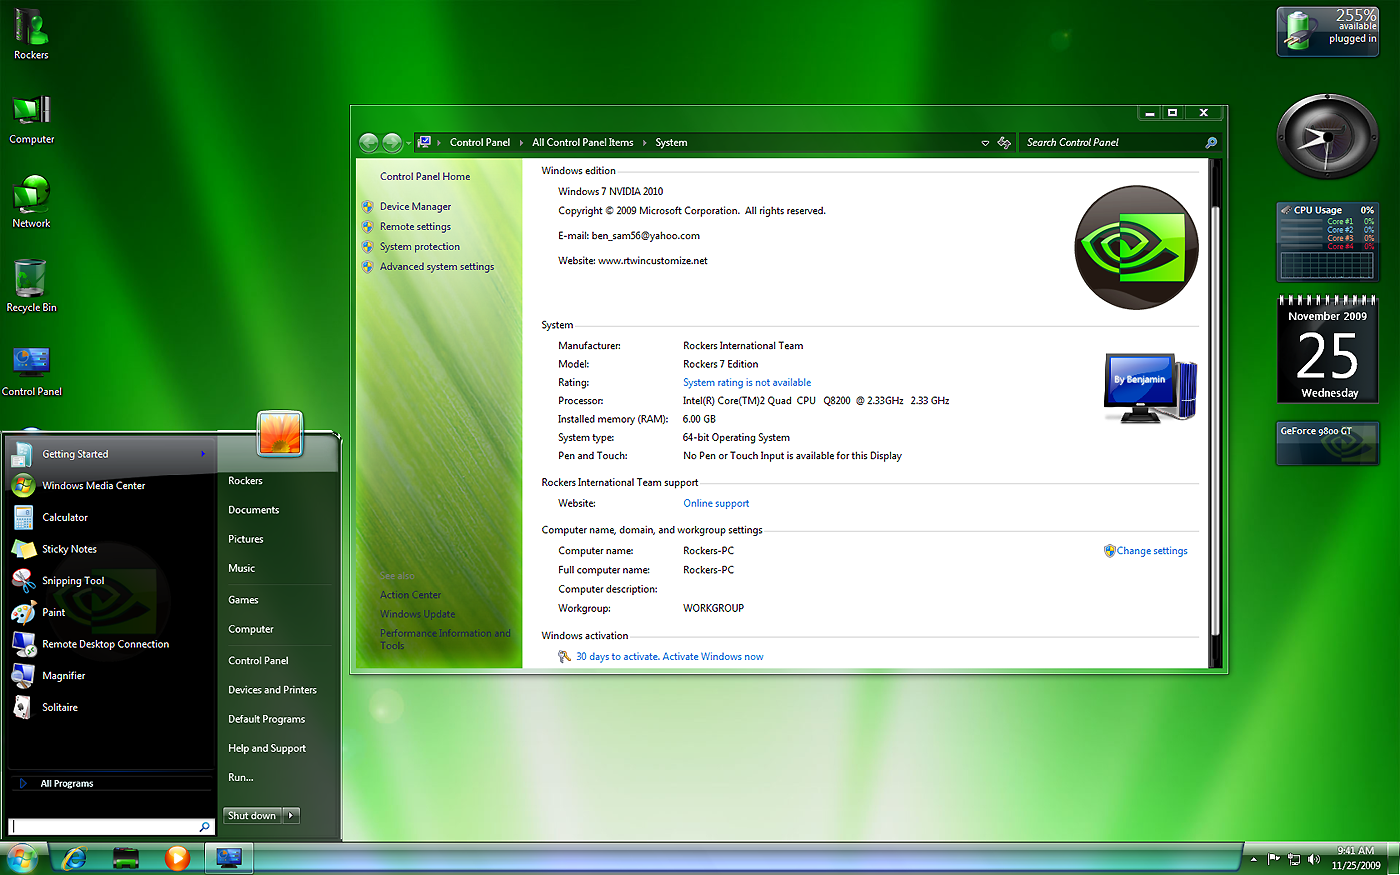 Win7 nvidia 86 and 64 bit and activators